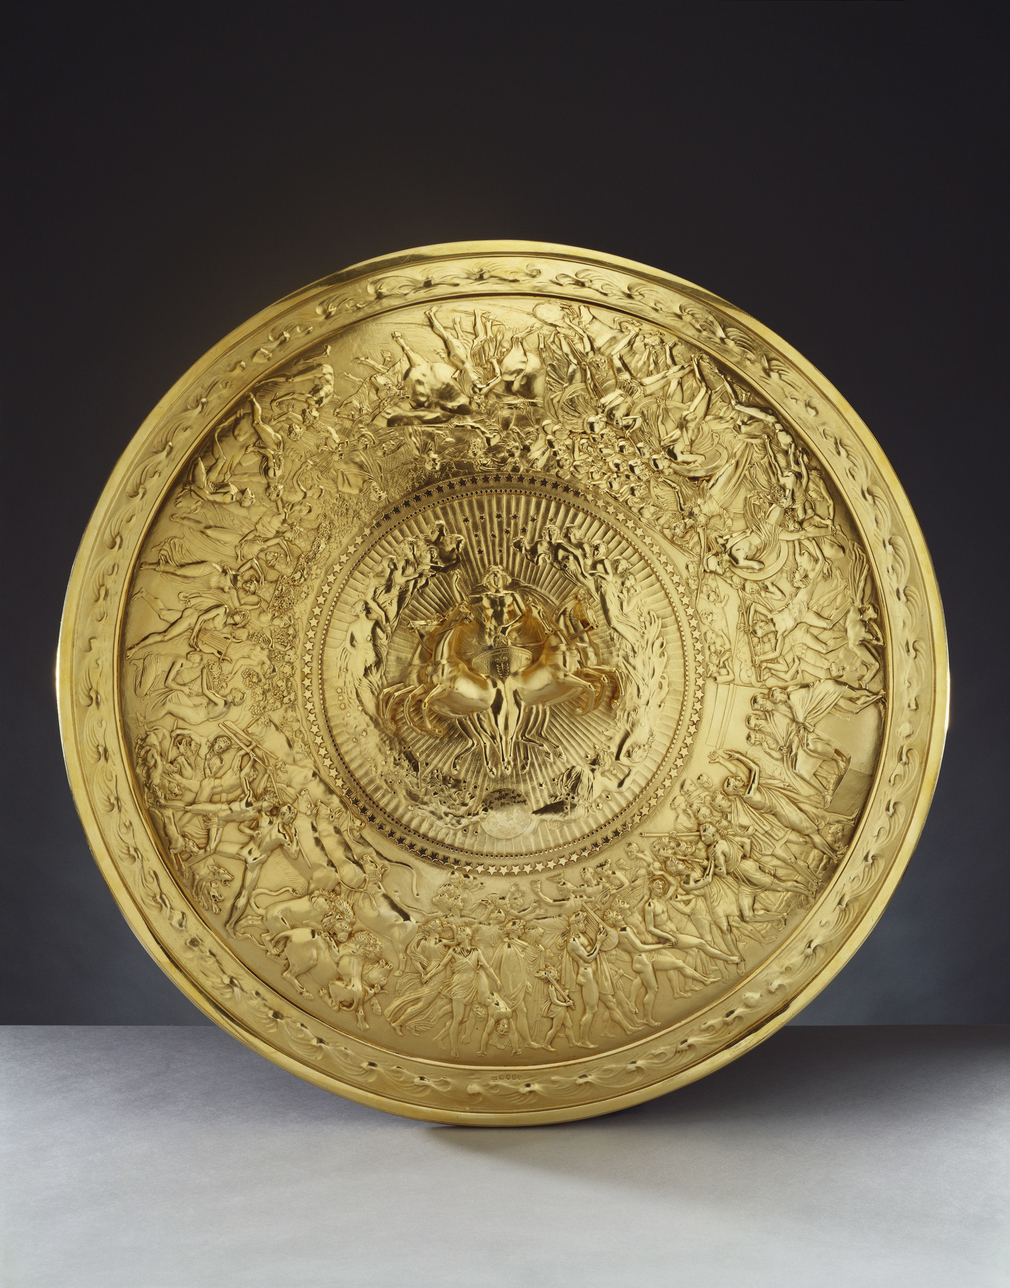 A silver-gilt convex shield with a central medallion cast in high relief with Apollo in a quadriga, surrounded by stars and female figures representing the constellations. The broad border is cast in low relief with scenes of human life (a wedding and ban